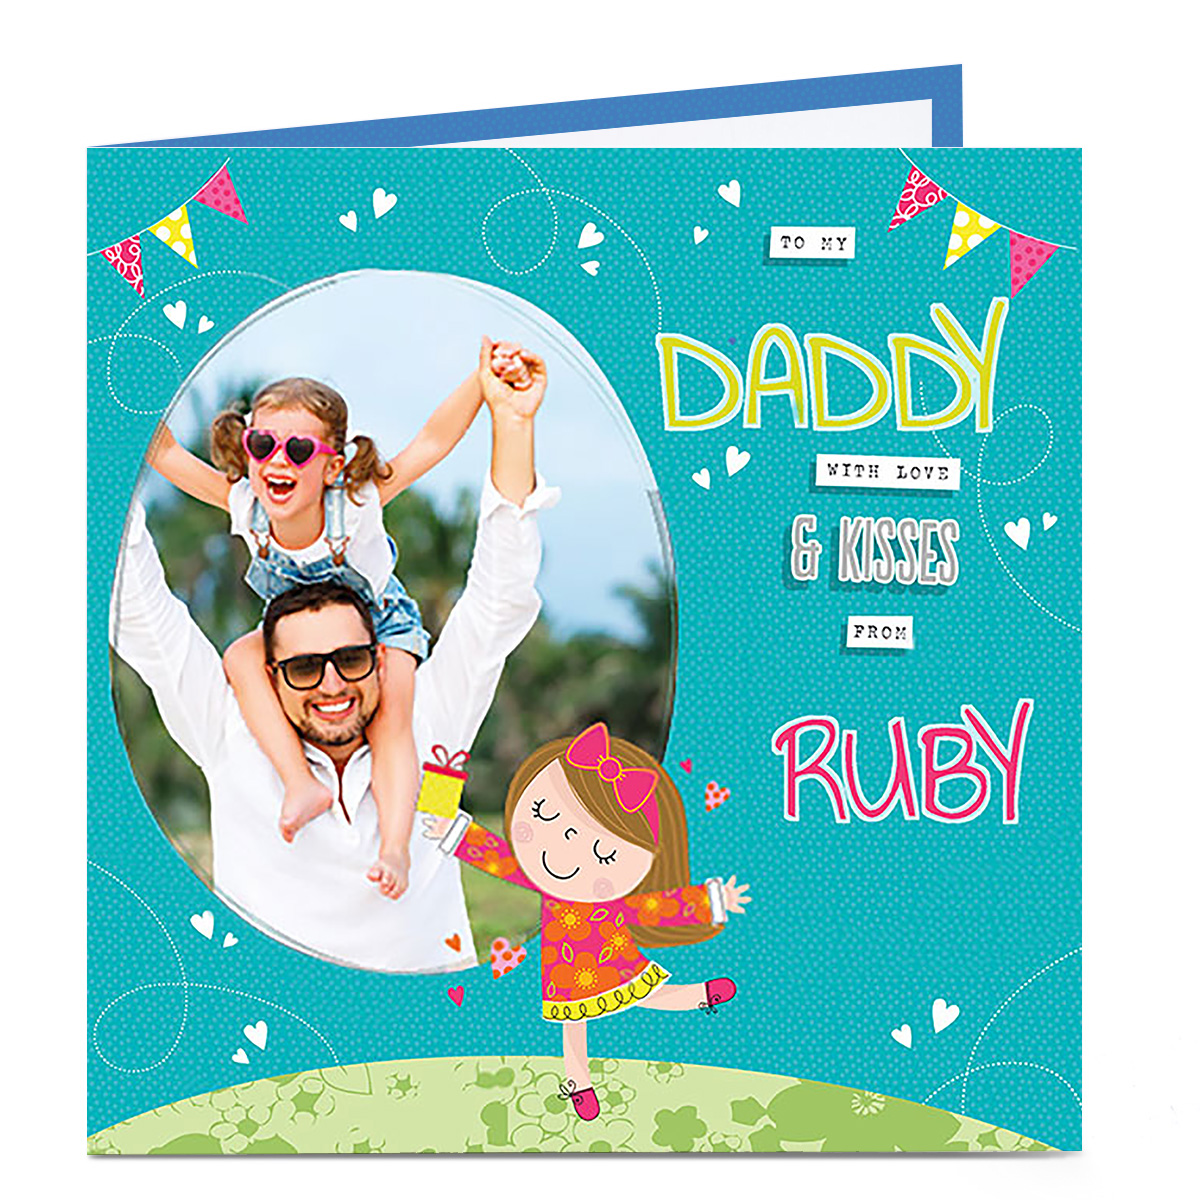 Personalised Birthday Photo Card - From their little girl